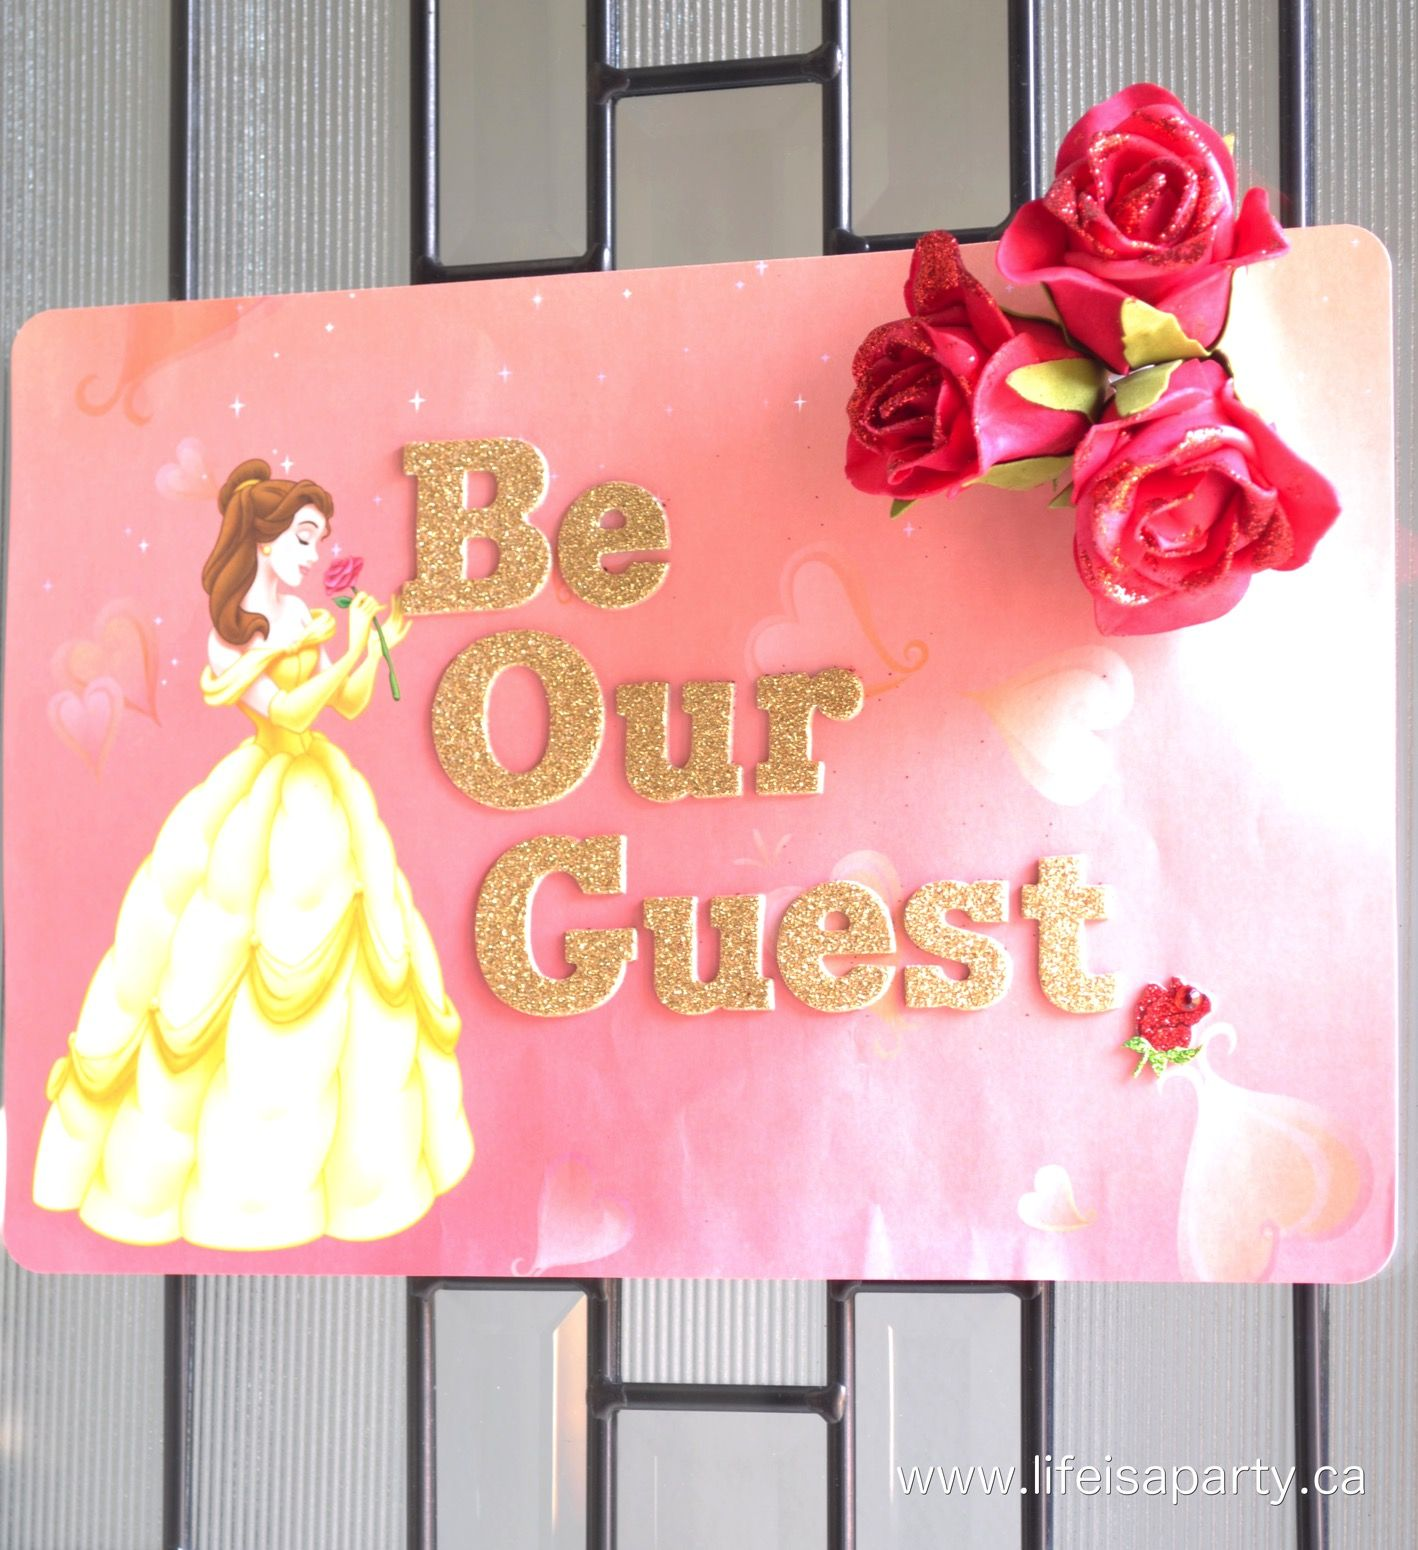 Beauty and the beast party party ideas pinterest for Princess dekoration